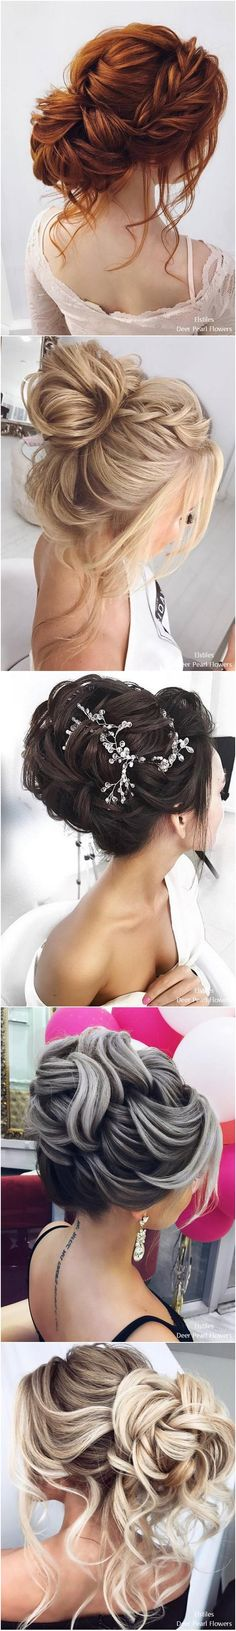 30 Elstile Long Wedding Hairstyles and Updos #wedding #weddingideas #hairstyles #elstile #weddingupdos http://www.deerpearlflowers.com/elstile-long-wedding-hairstyles-and-updos/